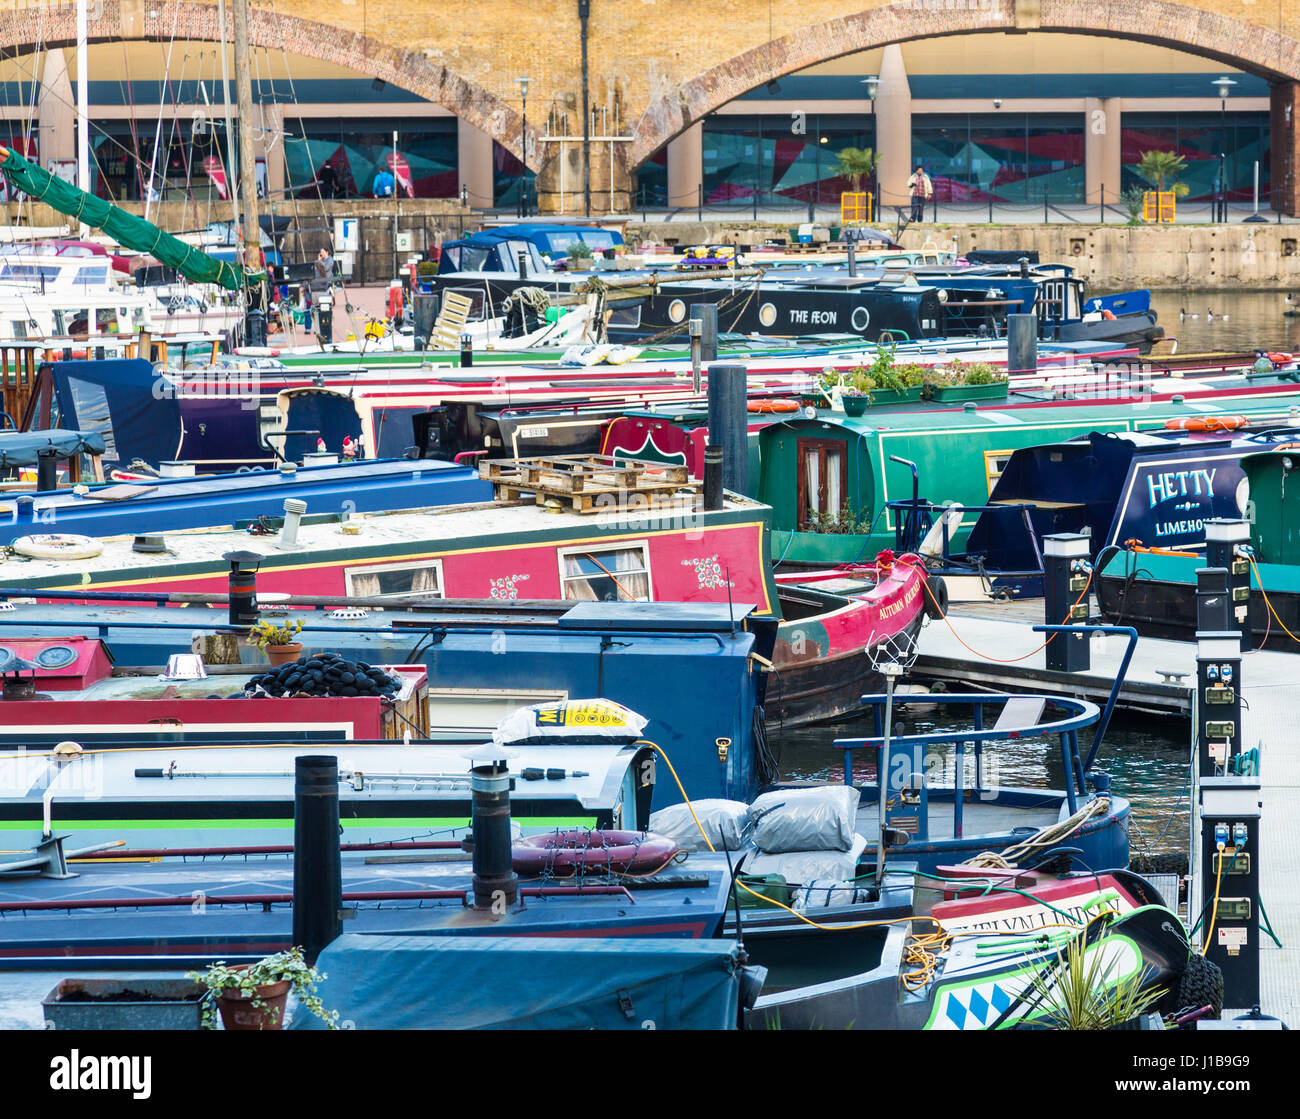 Barges and houseboats in Limehouse Basin Marina in Docklands, East End of London, England - Stock Image